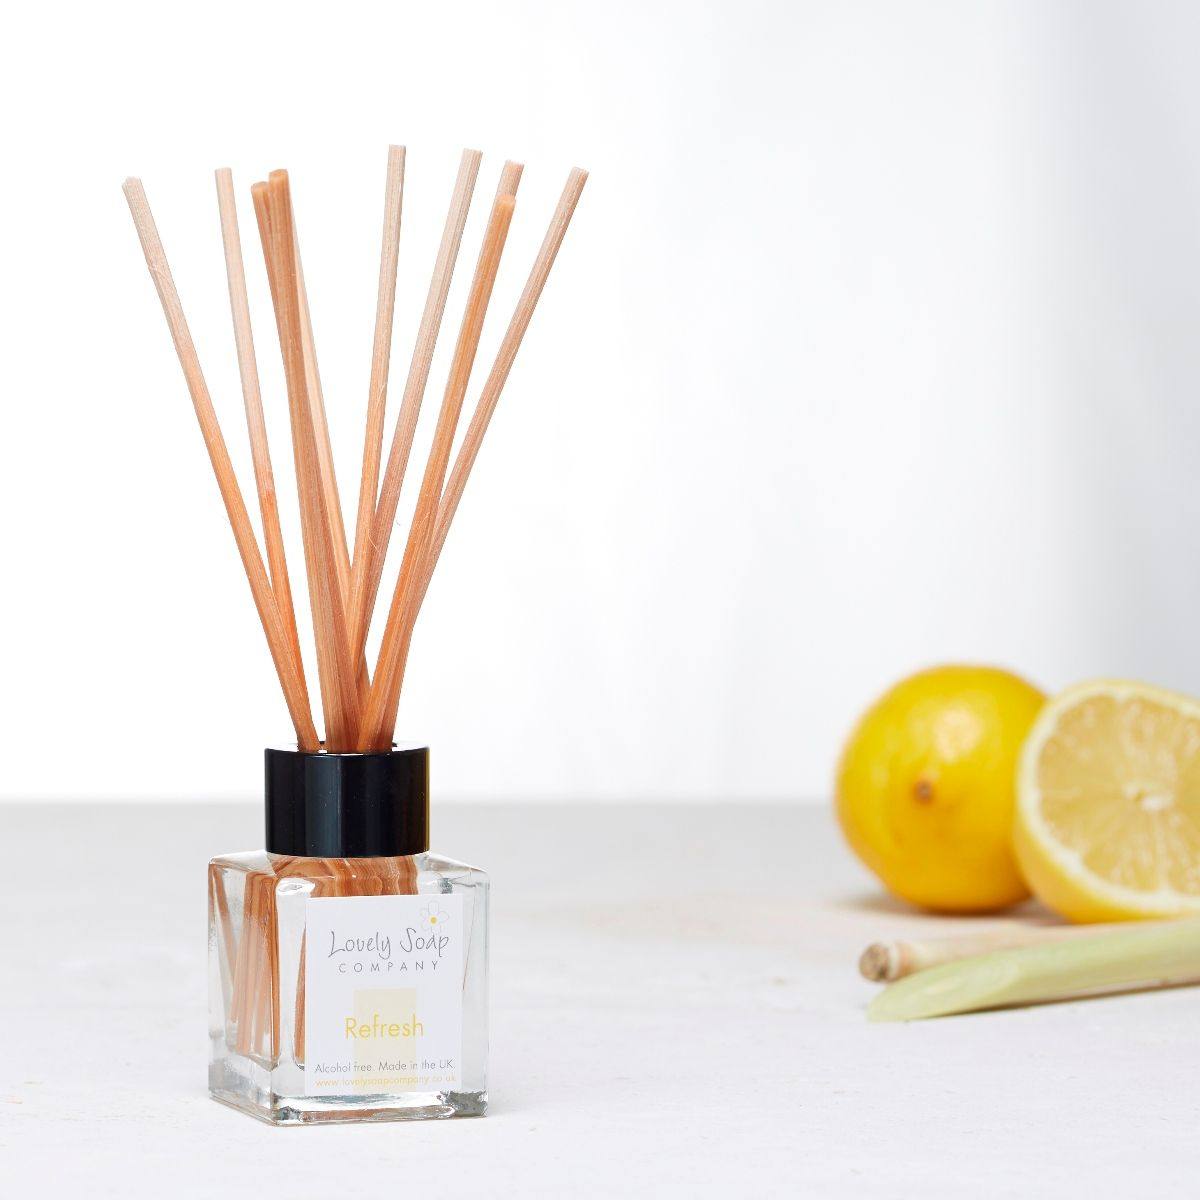 Refresh aromatherapy reed diffuser by Lovely Soap Company